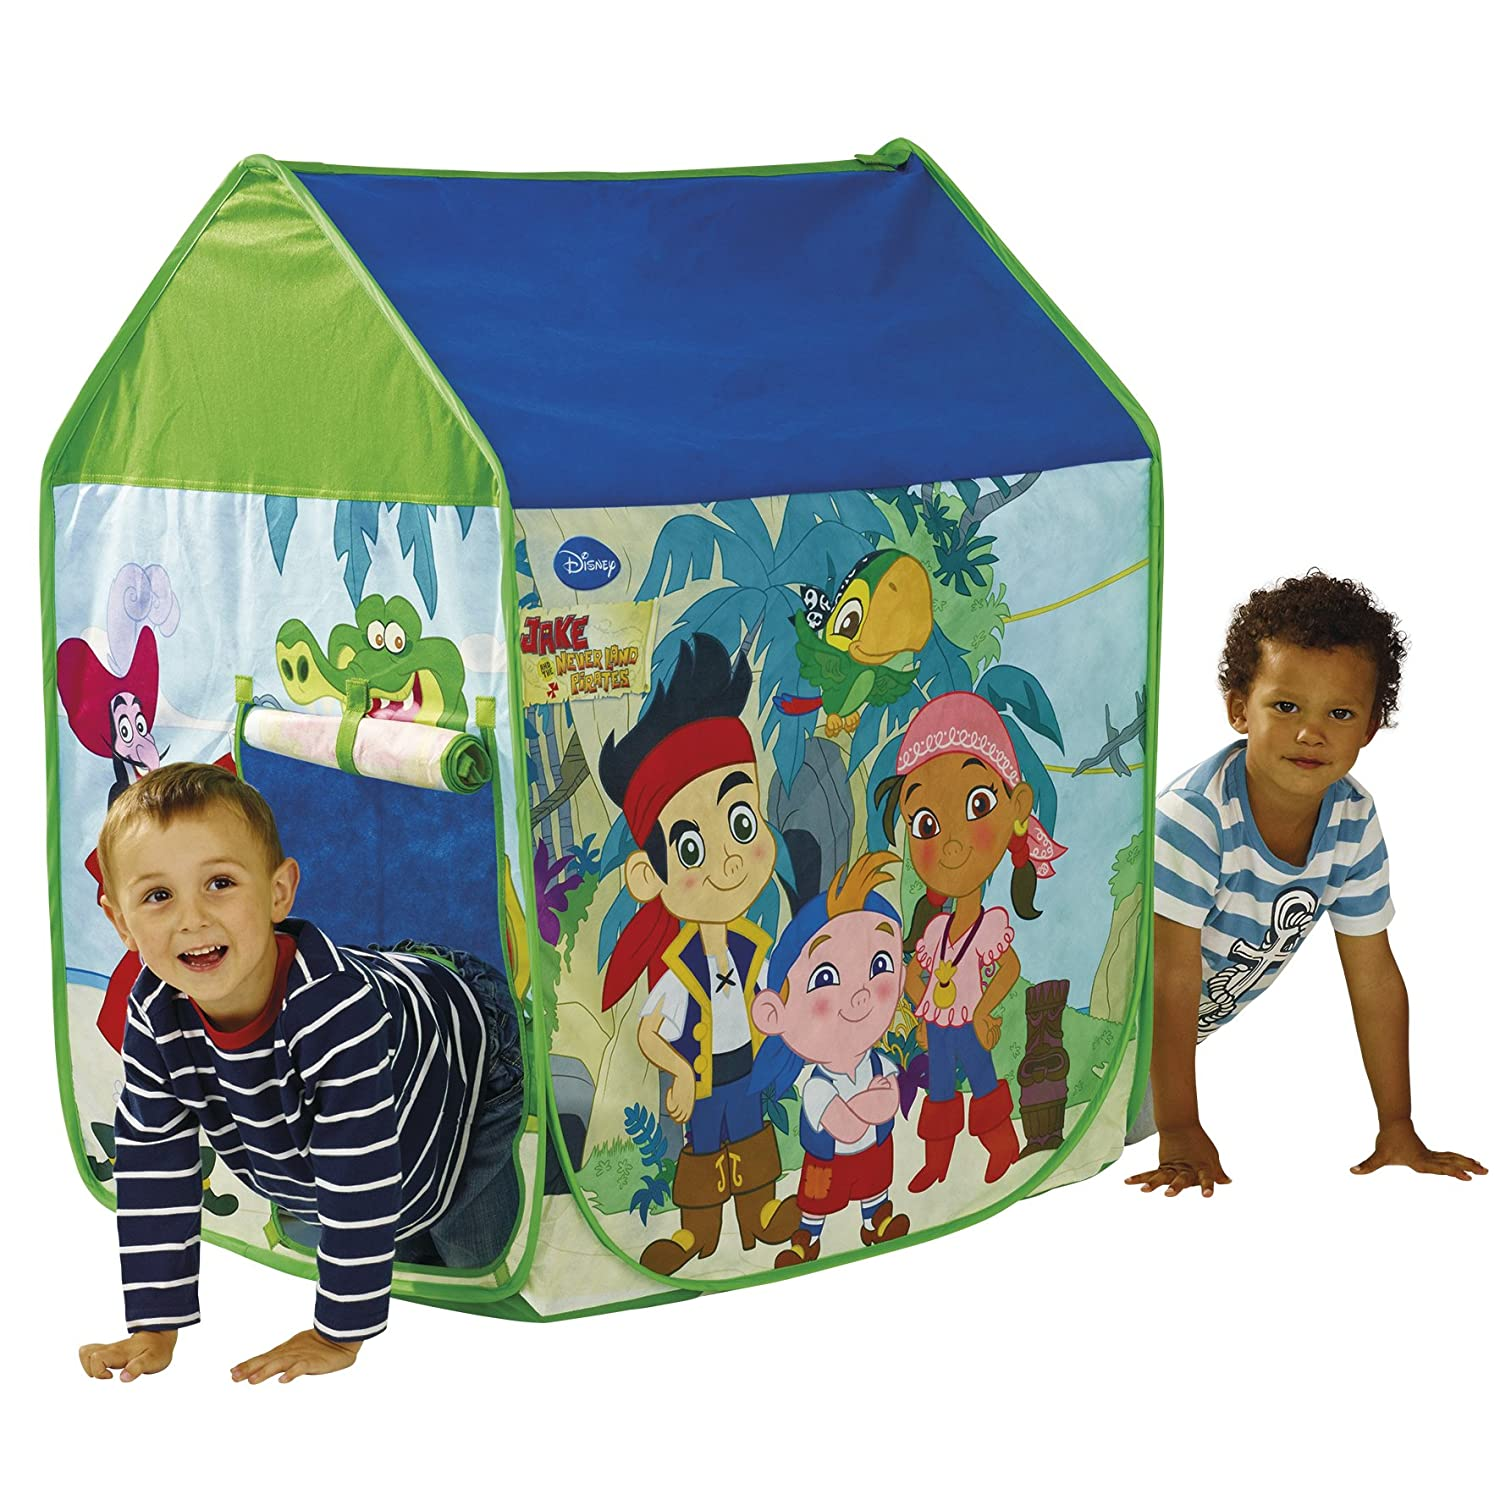 sc 1 st  Amazon.com & Amazon.com: Jake and The Neverland Pirates Wendy Tent: Toys u0026 Games